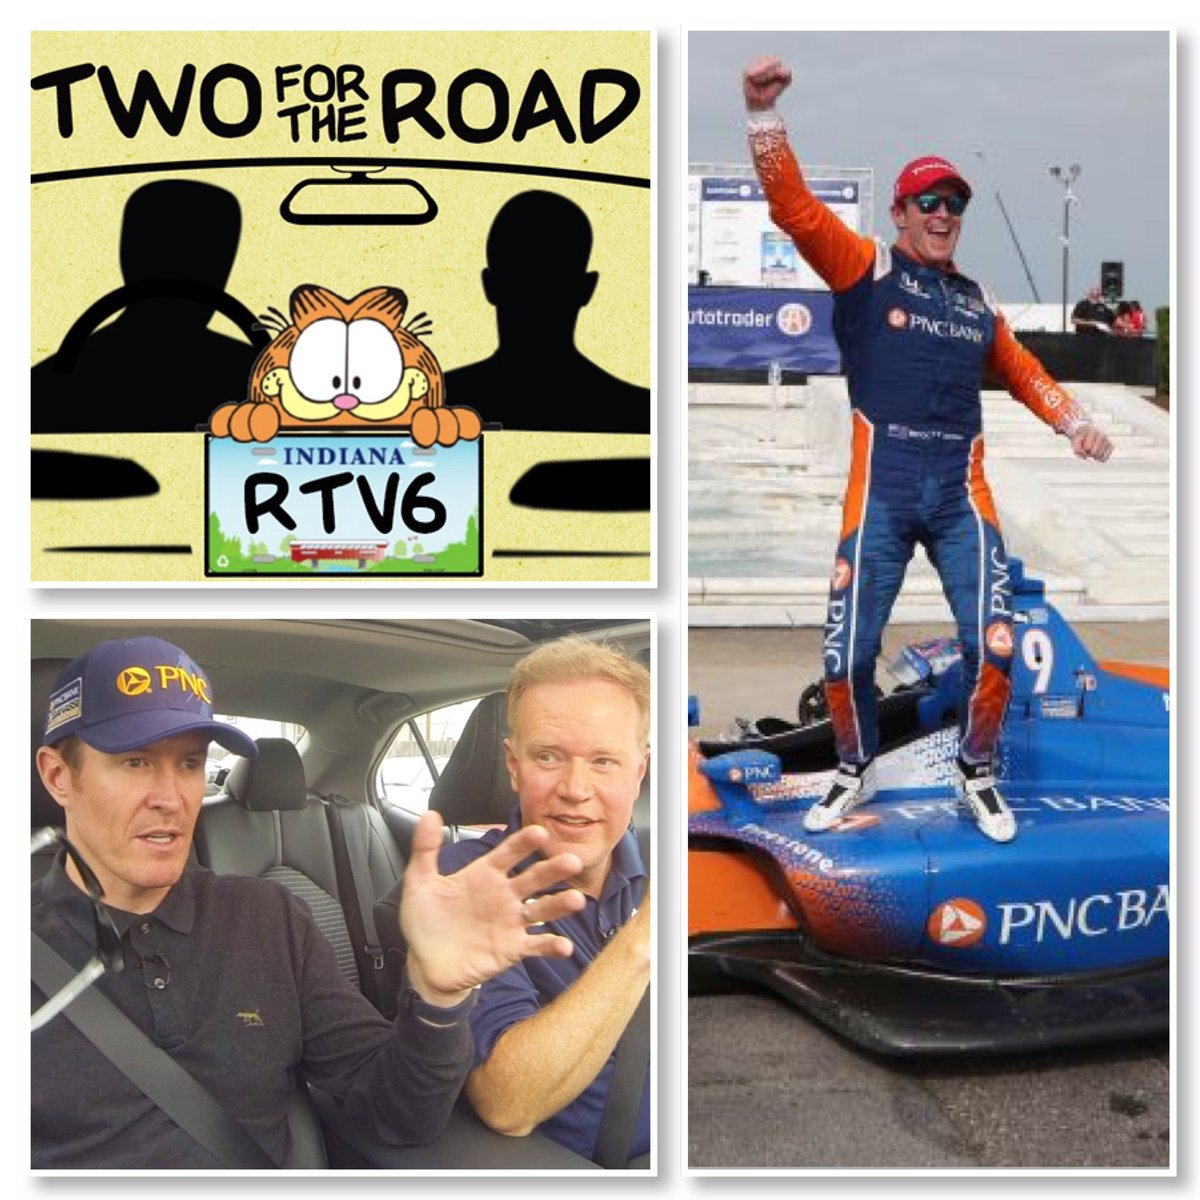 ICYMI: Official launch of a campy, new #Trackside6 segment: Two for the Road. 5-time #IndyCar series champ, @scottdixon9 leads us off. Gingers unite! 🤣 [WATCH] facebook.com/16310504704925…